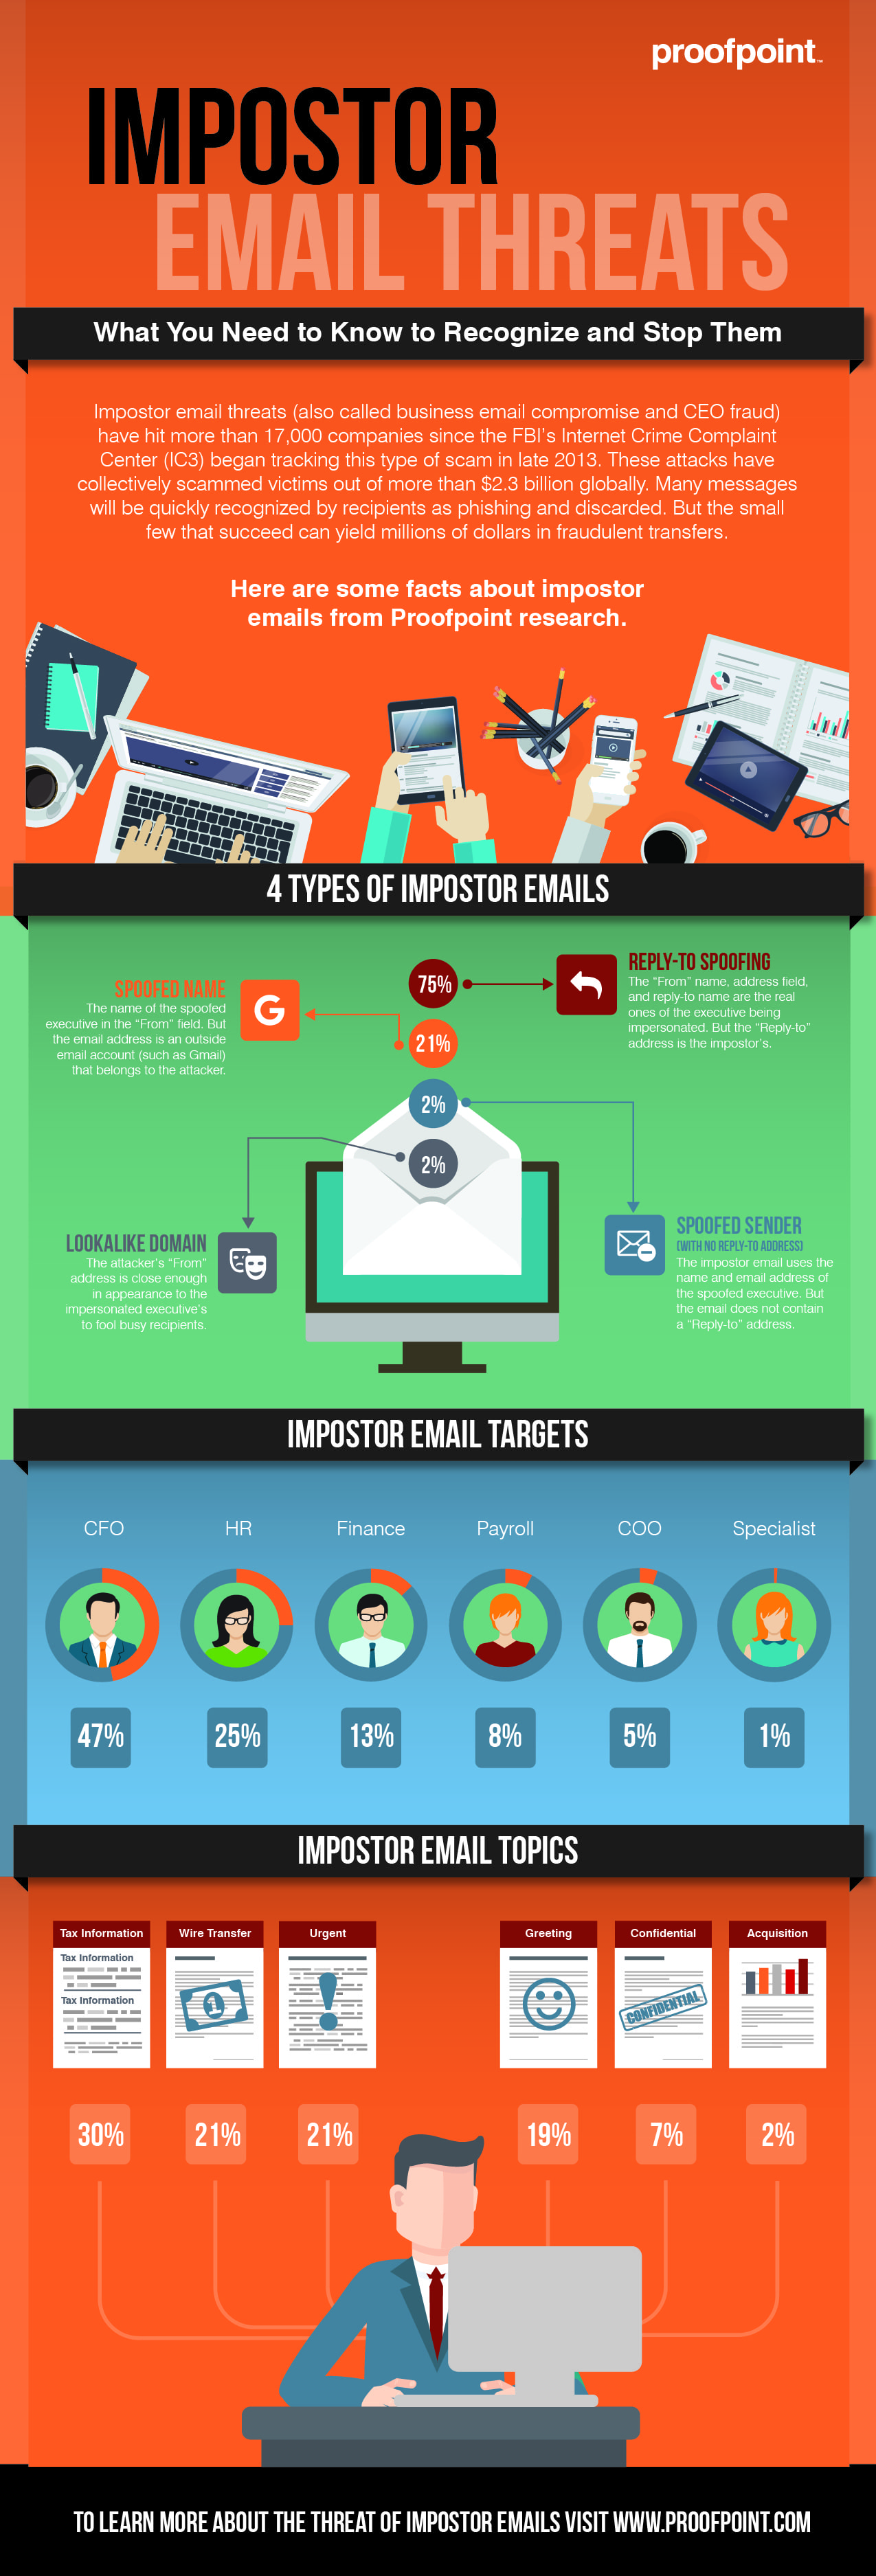 proofpoint-impostor-infographic.jpg